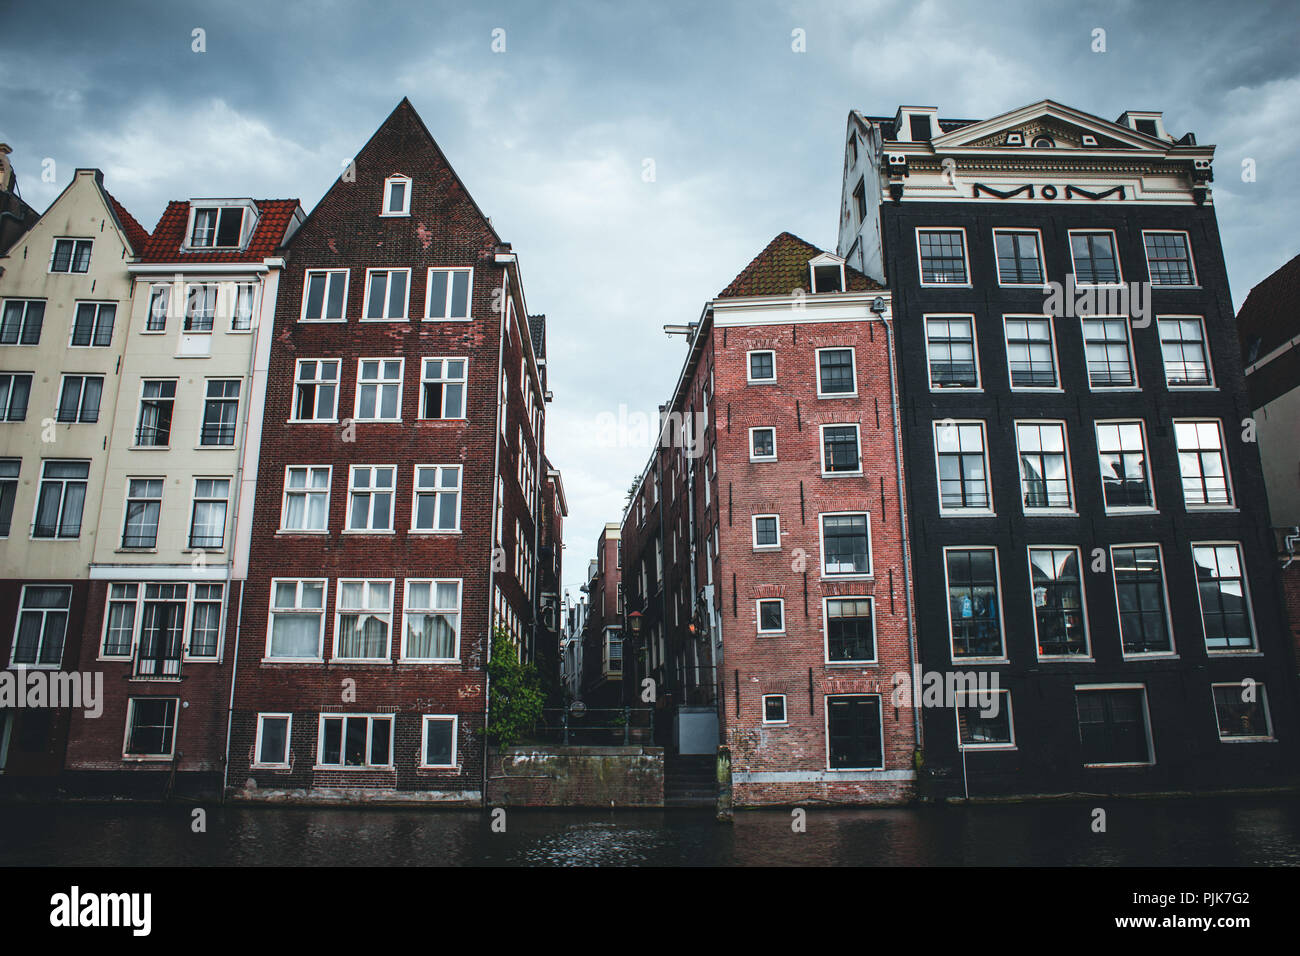 Netherlands, North Holland, Amsterdam, Houses on the Amstel River - Stock Image